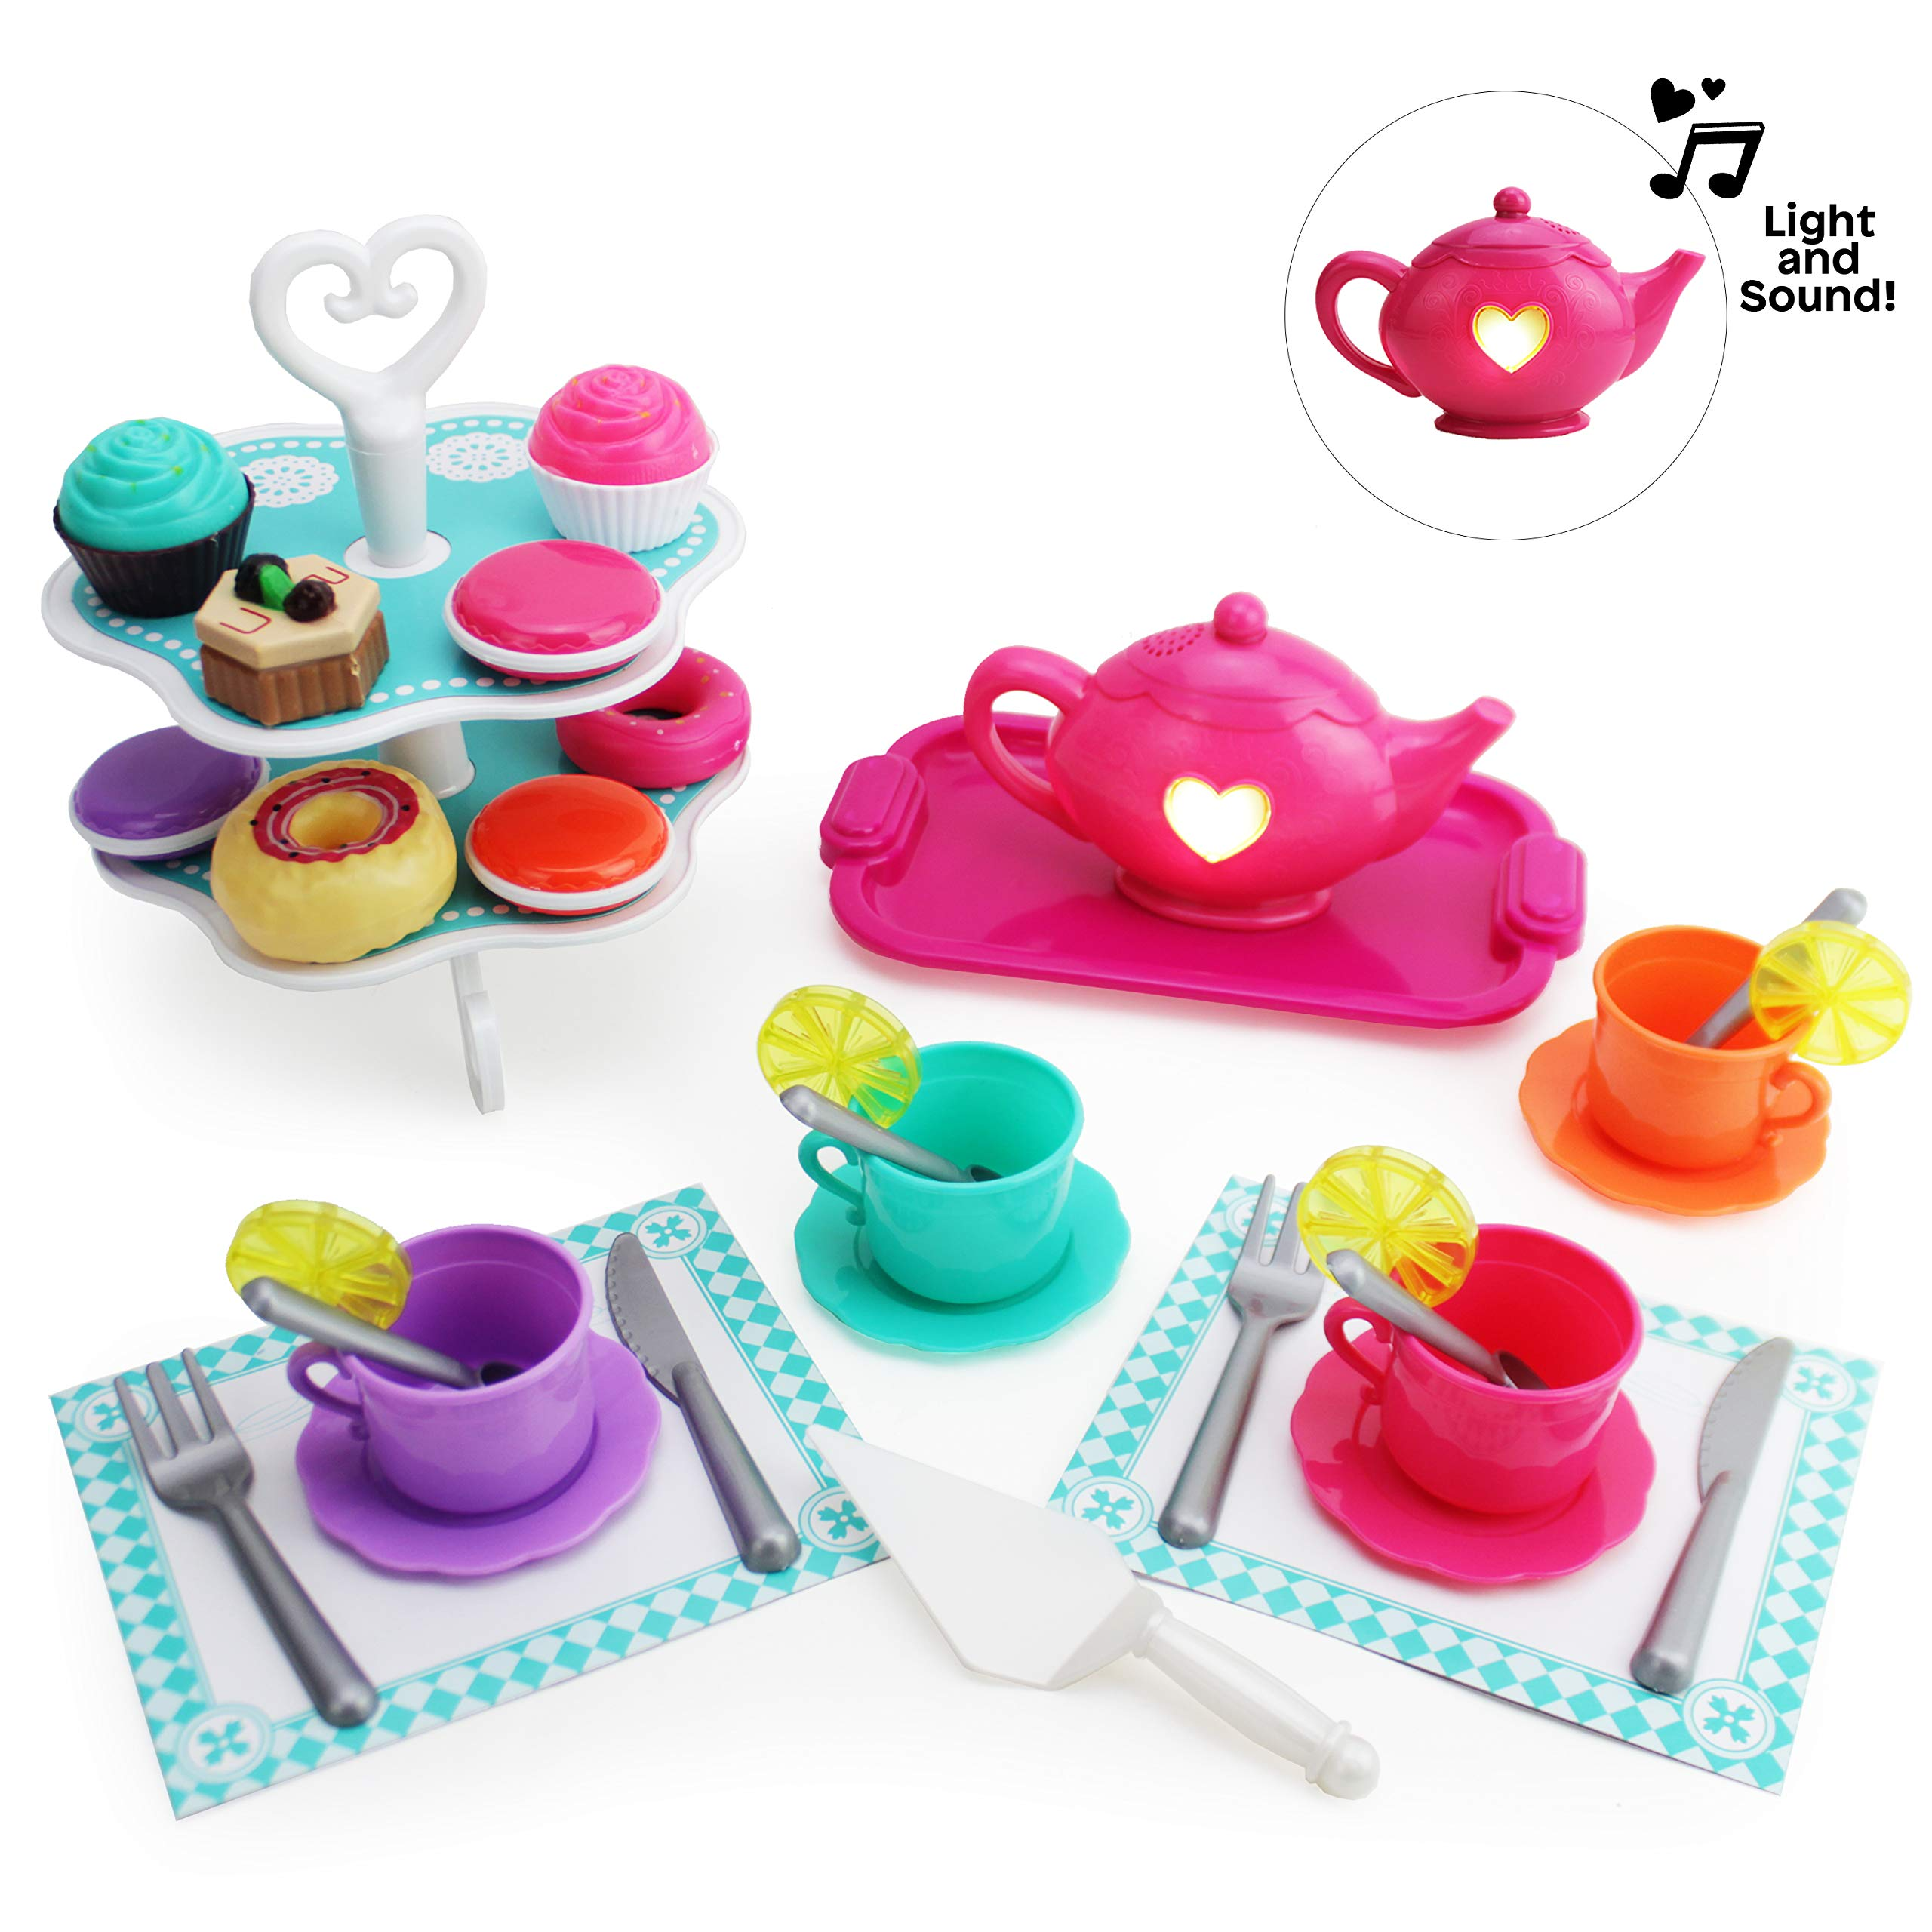 Boley Tea Set - 40 Piece Children's Tea Party Set with Princess Pink Teapot and Plastic Tray, Vintage Teacups with Saucers and Lemon Slices, Fancy Cake Stand with Cutlery and Play Food Mini Desserts by Boley